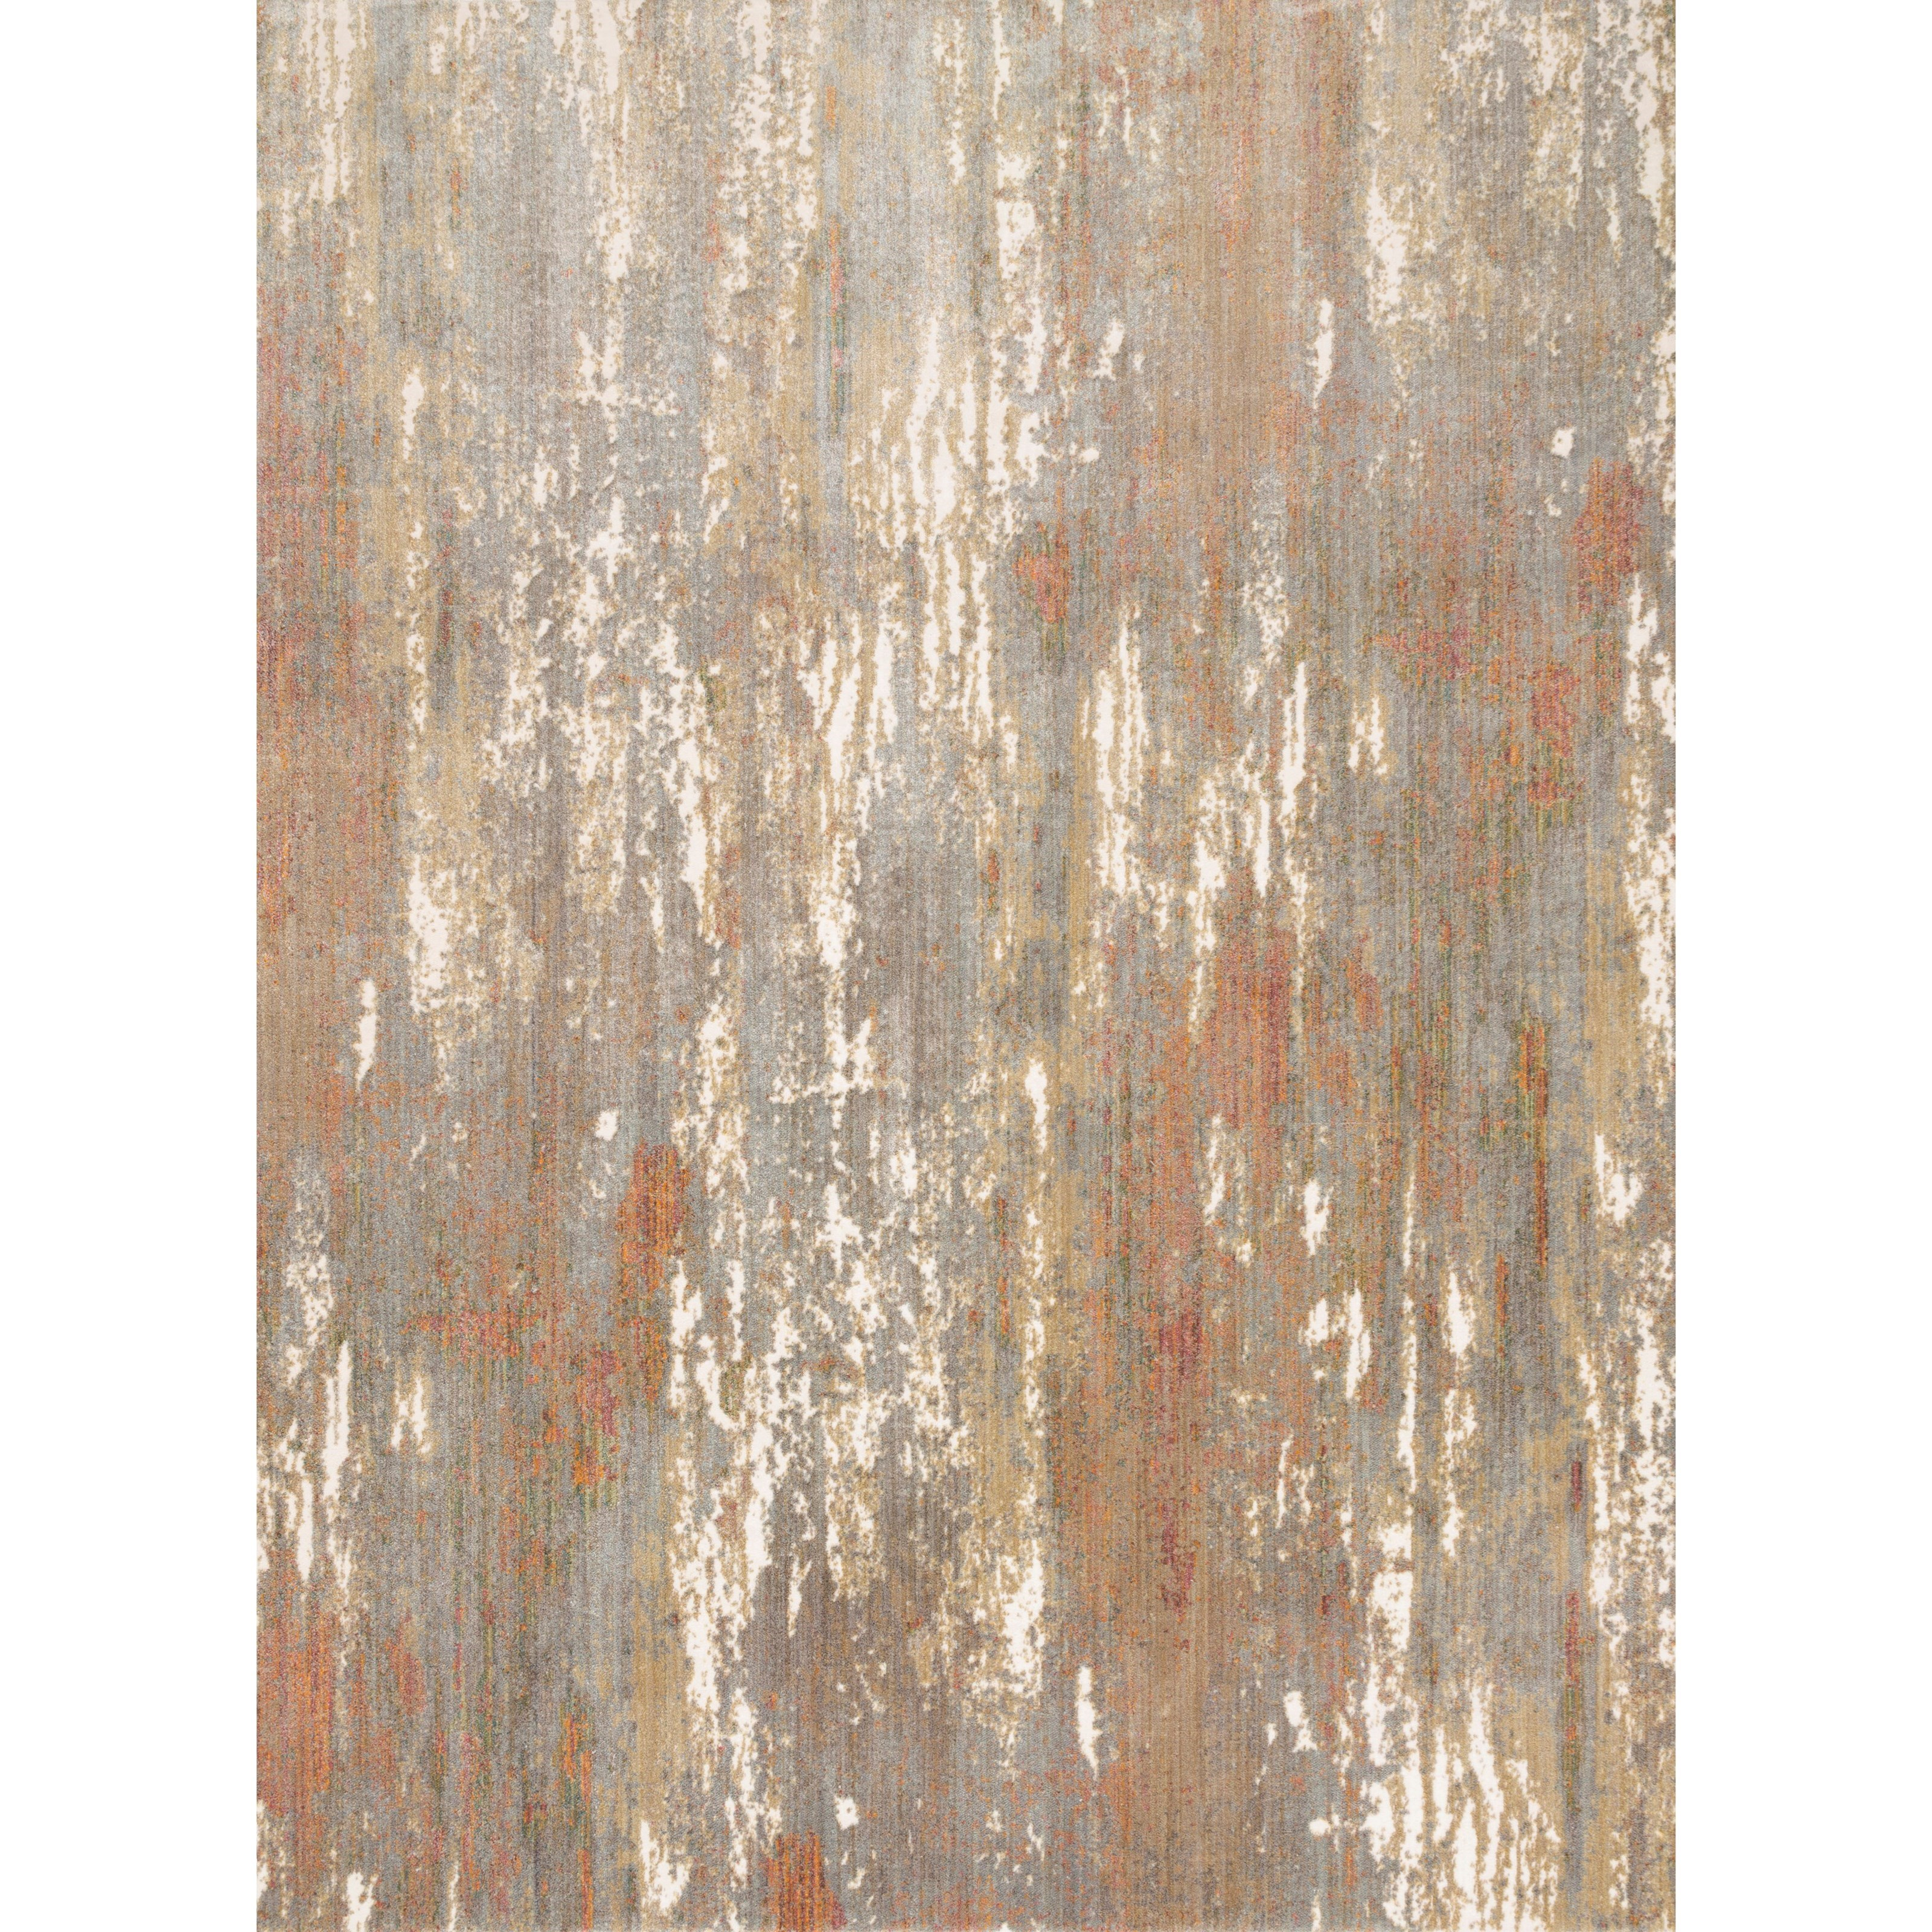 "Reid 5'3"" x 7'8"" Granite Rug by Loloi Rugs at Virginia Furniture Market"